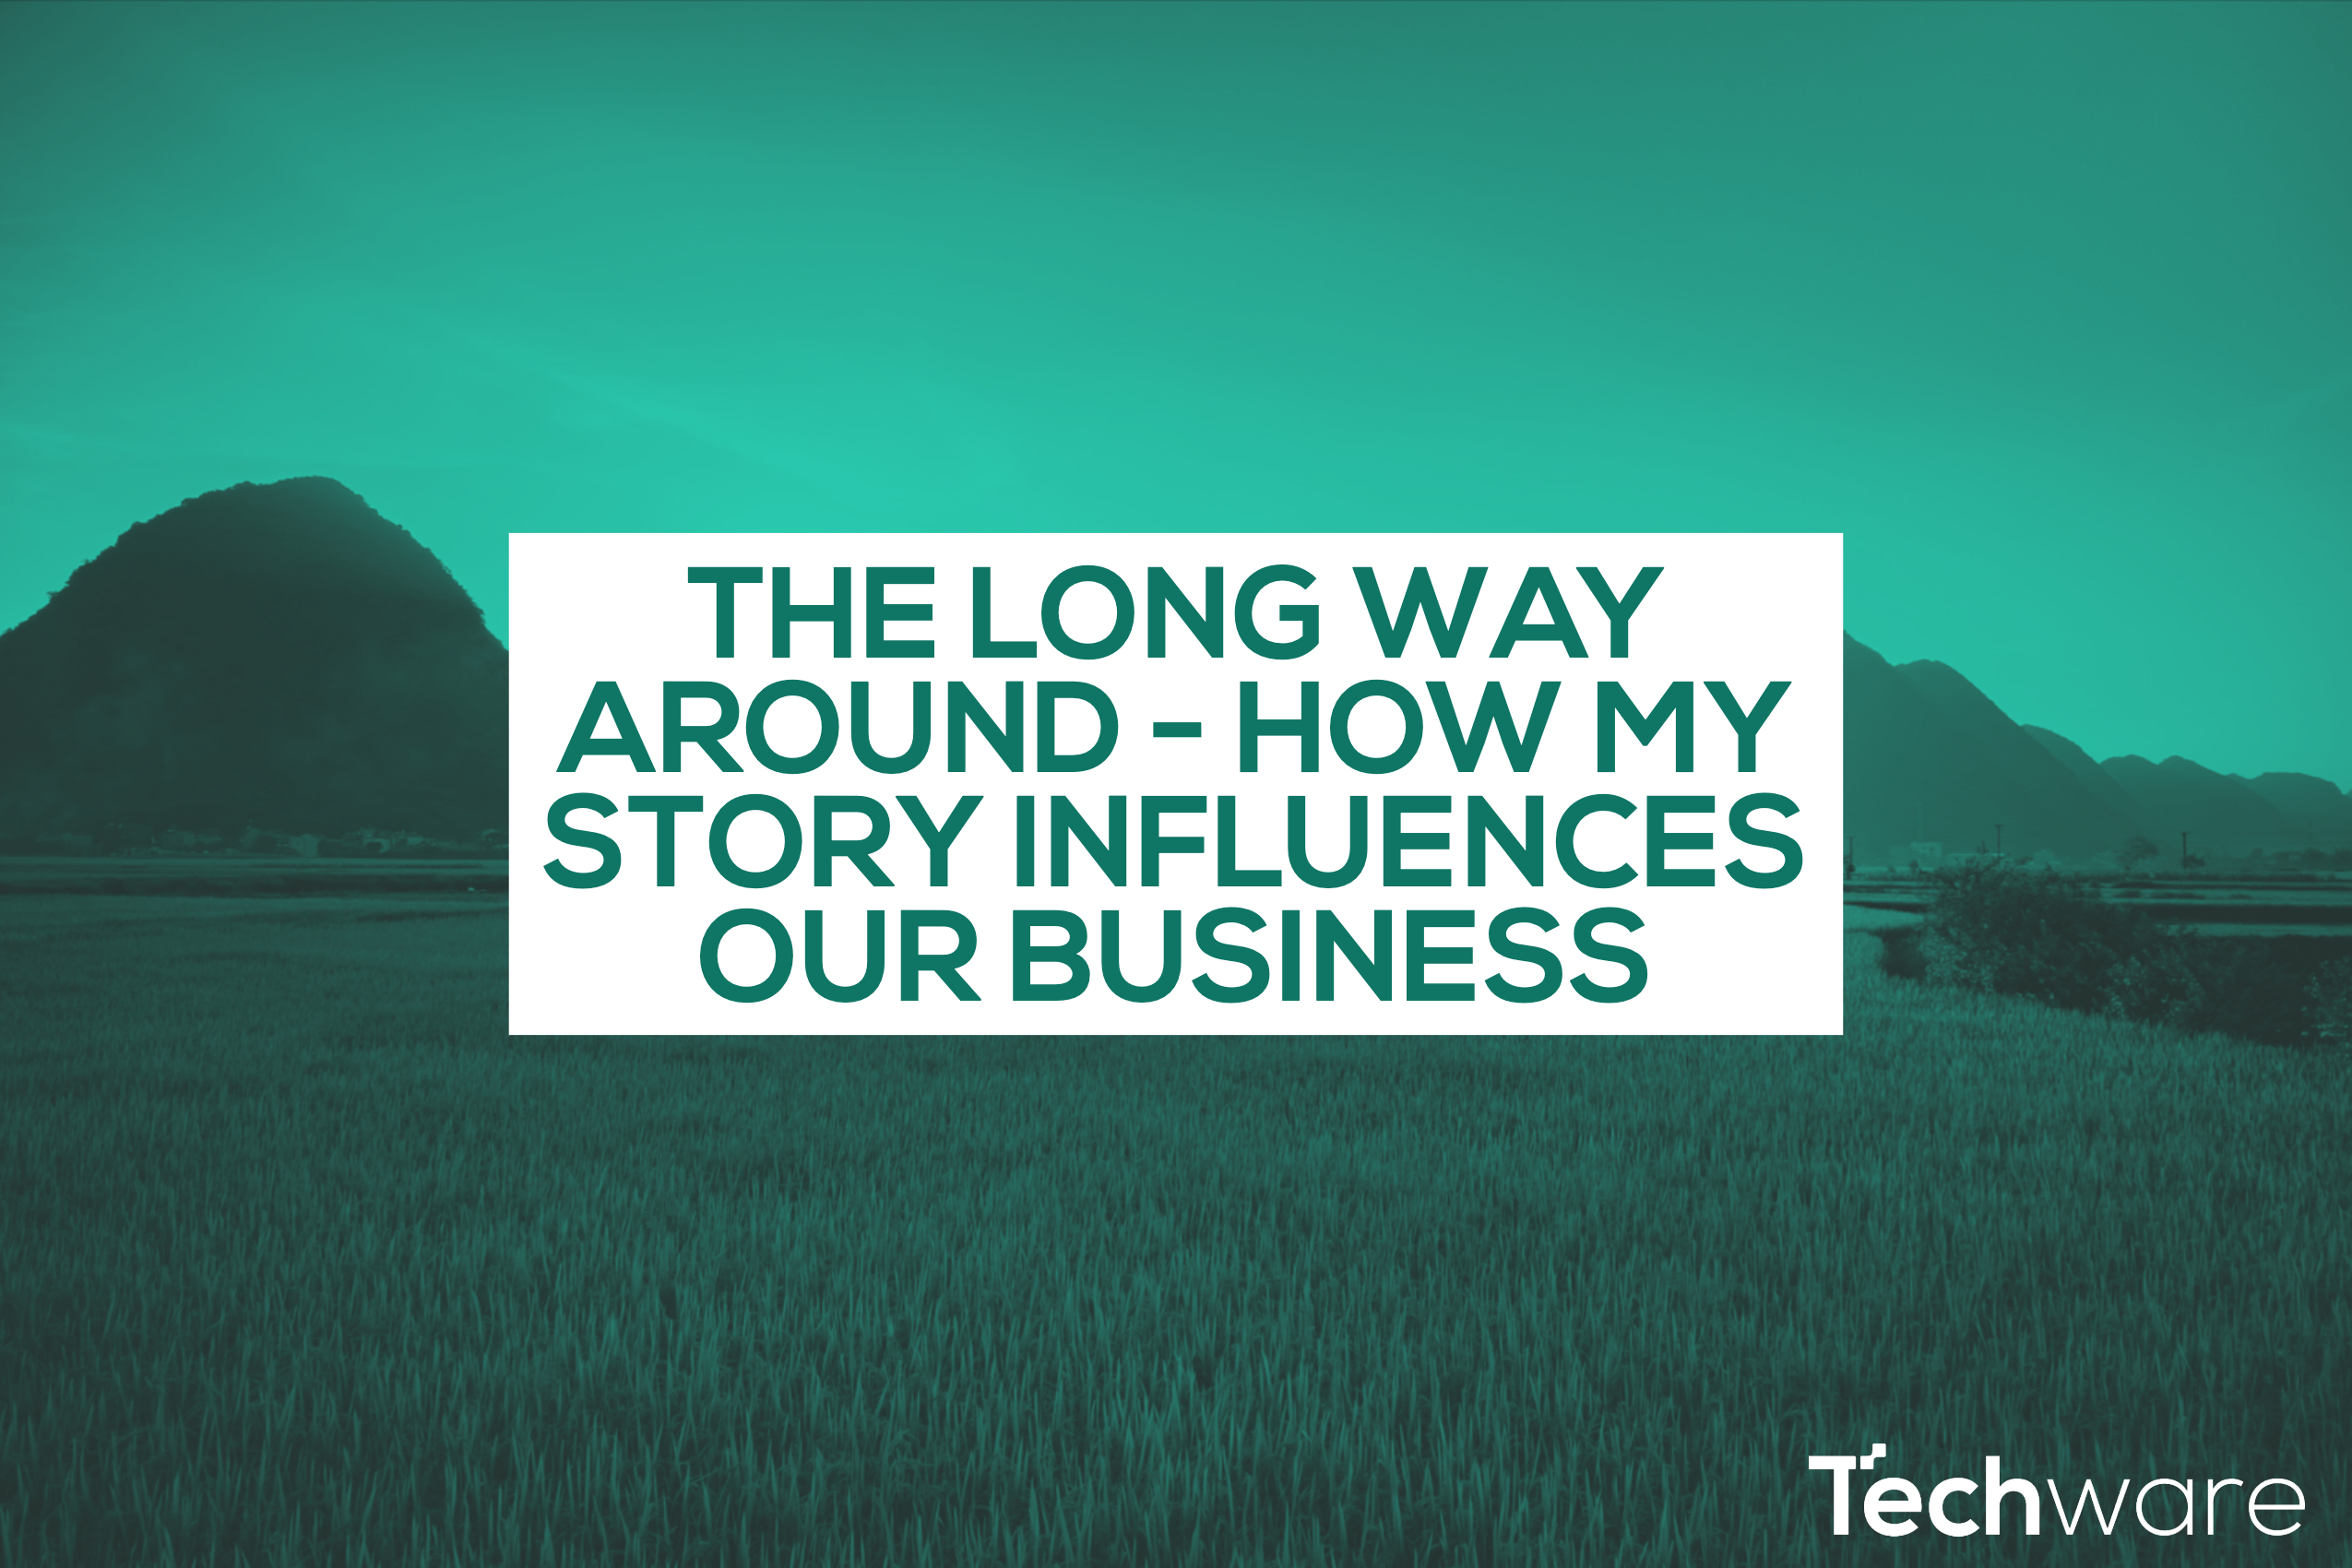 The long way around – how my story influences Techware